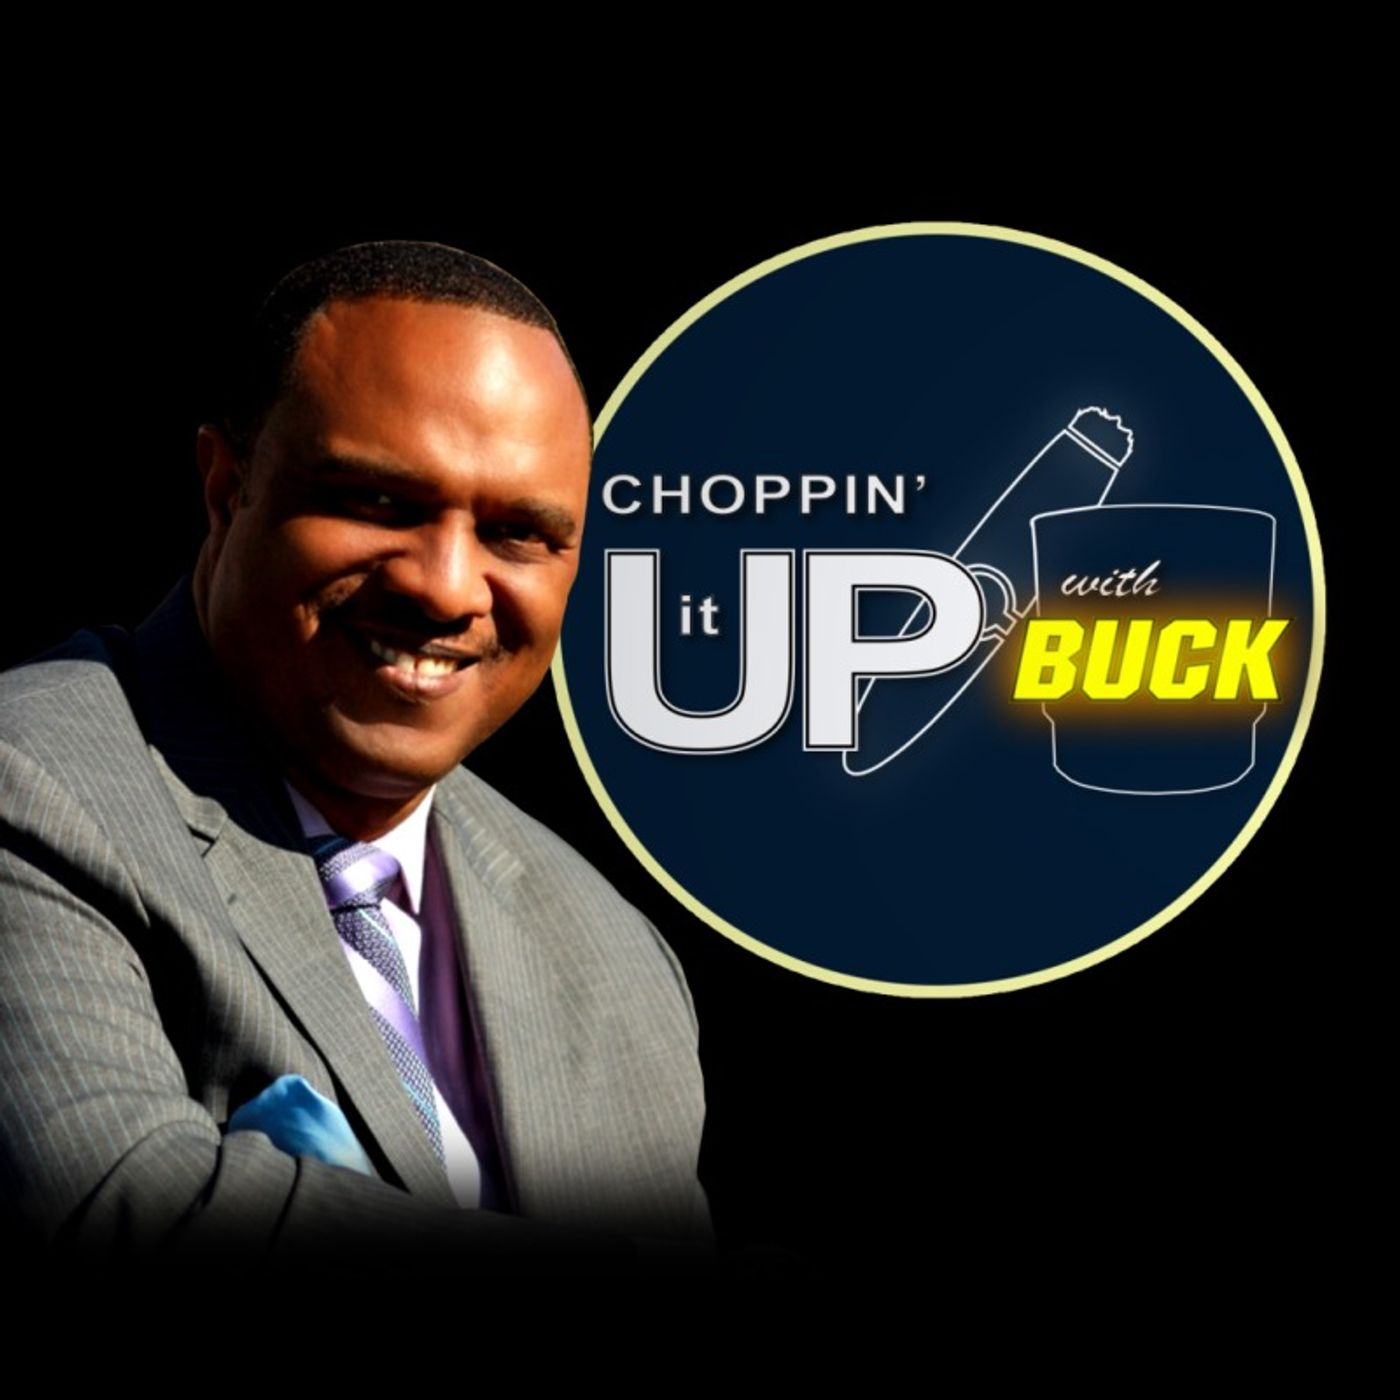 Choppin_It_UP_with_Buck